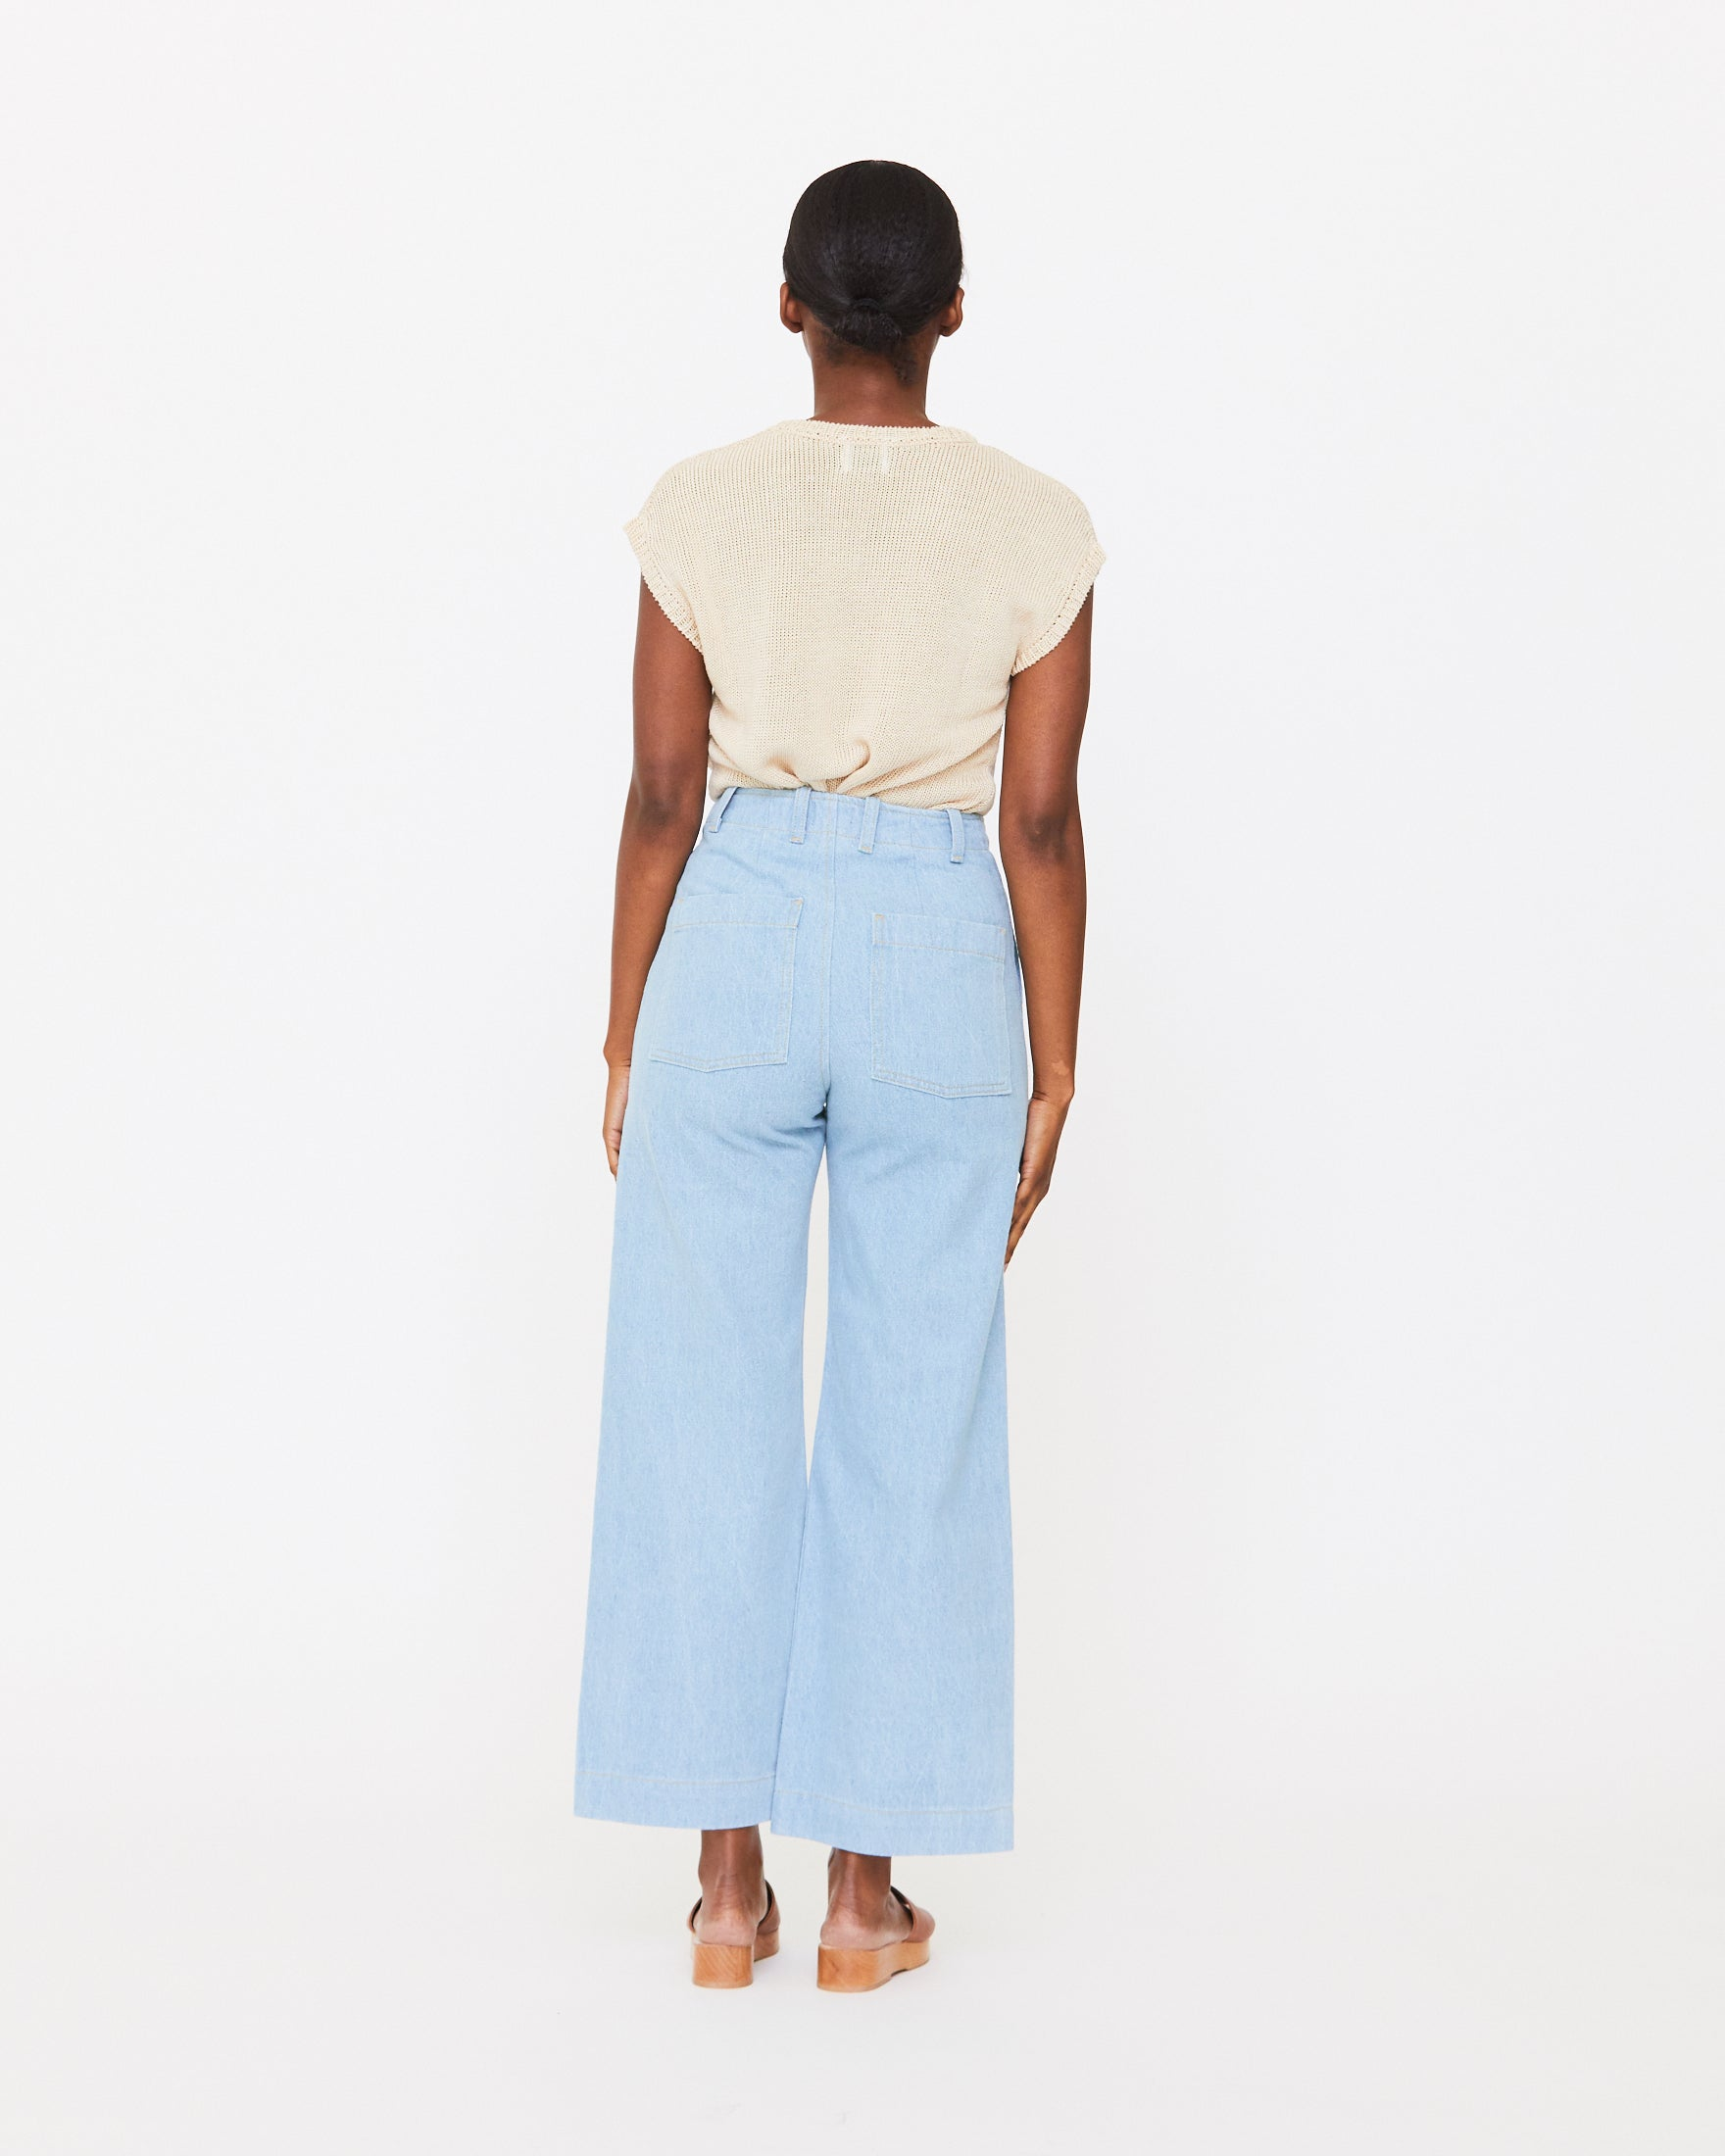 FINCH PANT - LIGHT WASH